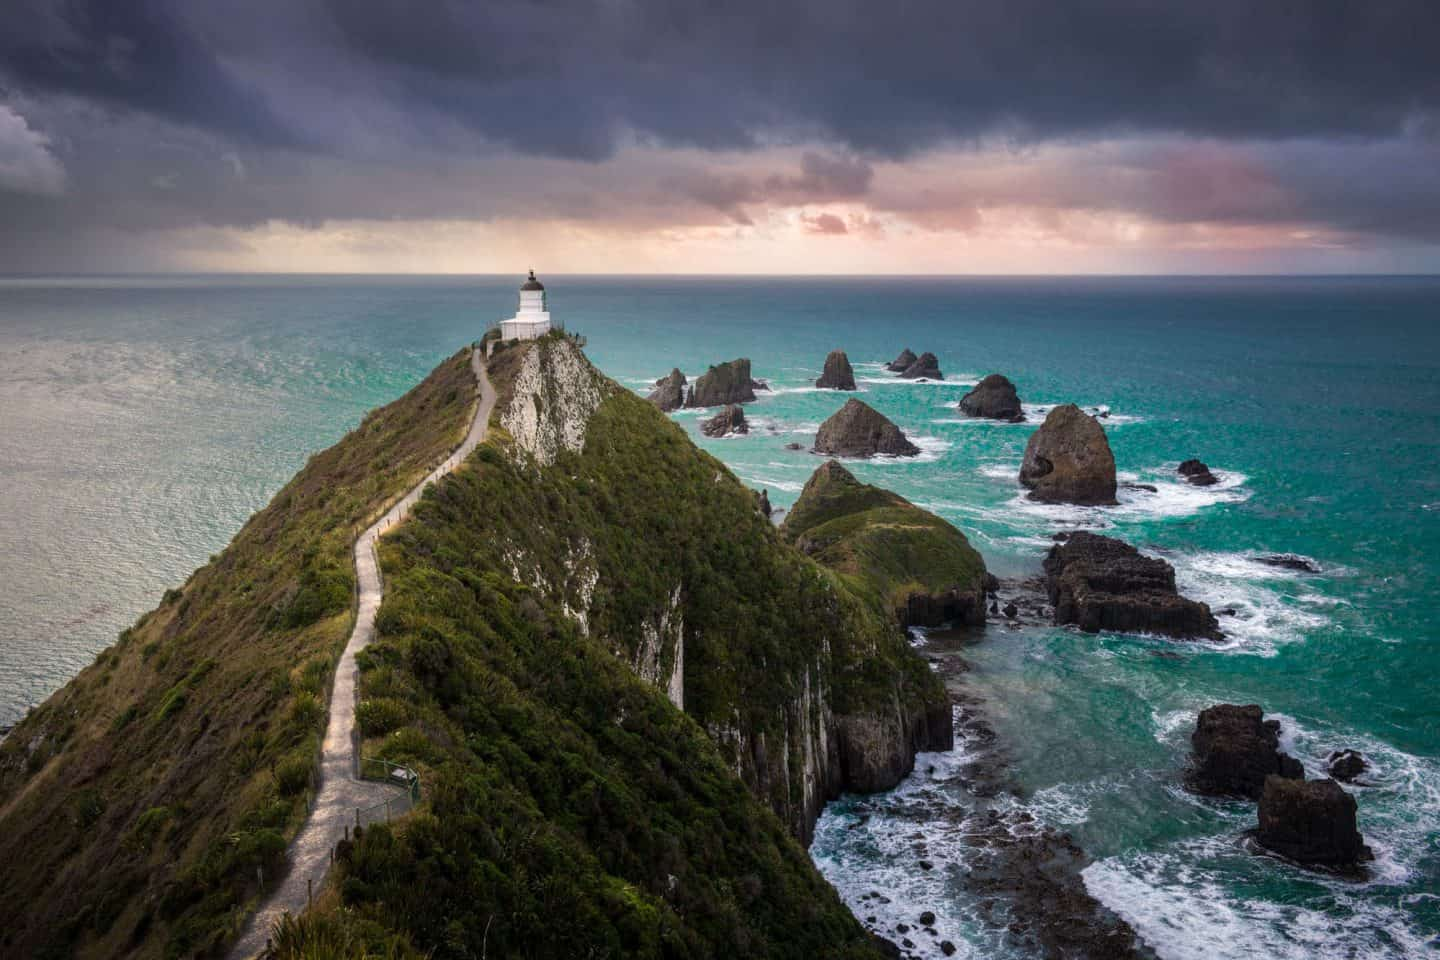 An early morning storm blows through, providing dramatic skies for this photograph of Nugget Point Lighthouse in the Catlins Forest Reserve.